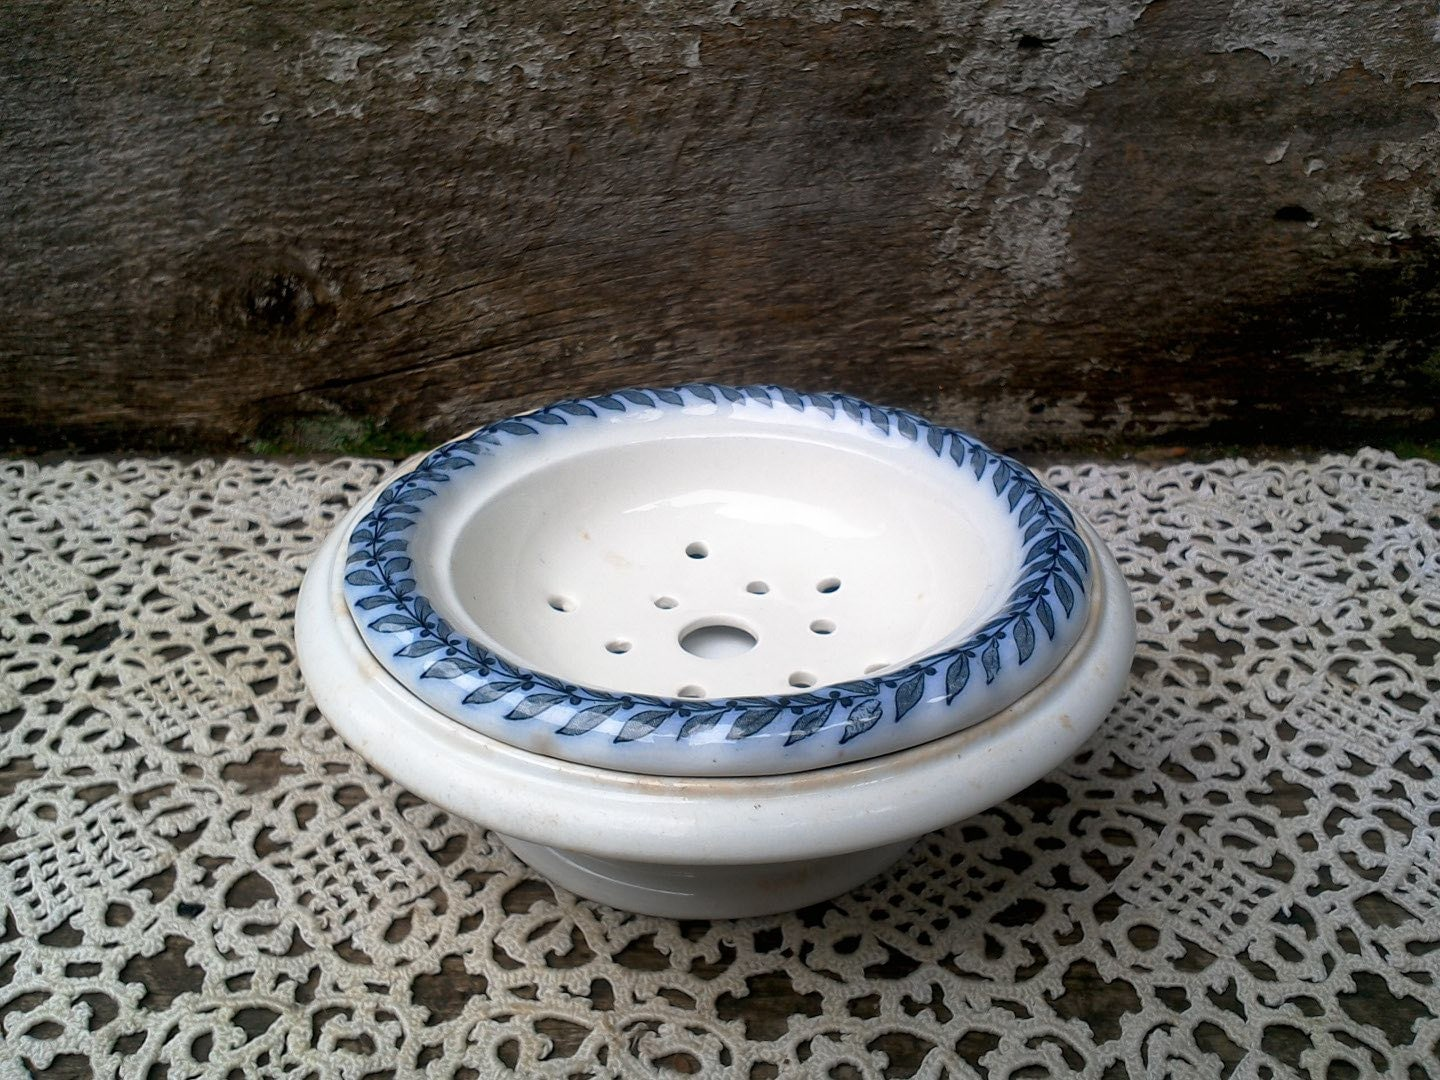 Vintage ironstone butter dish